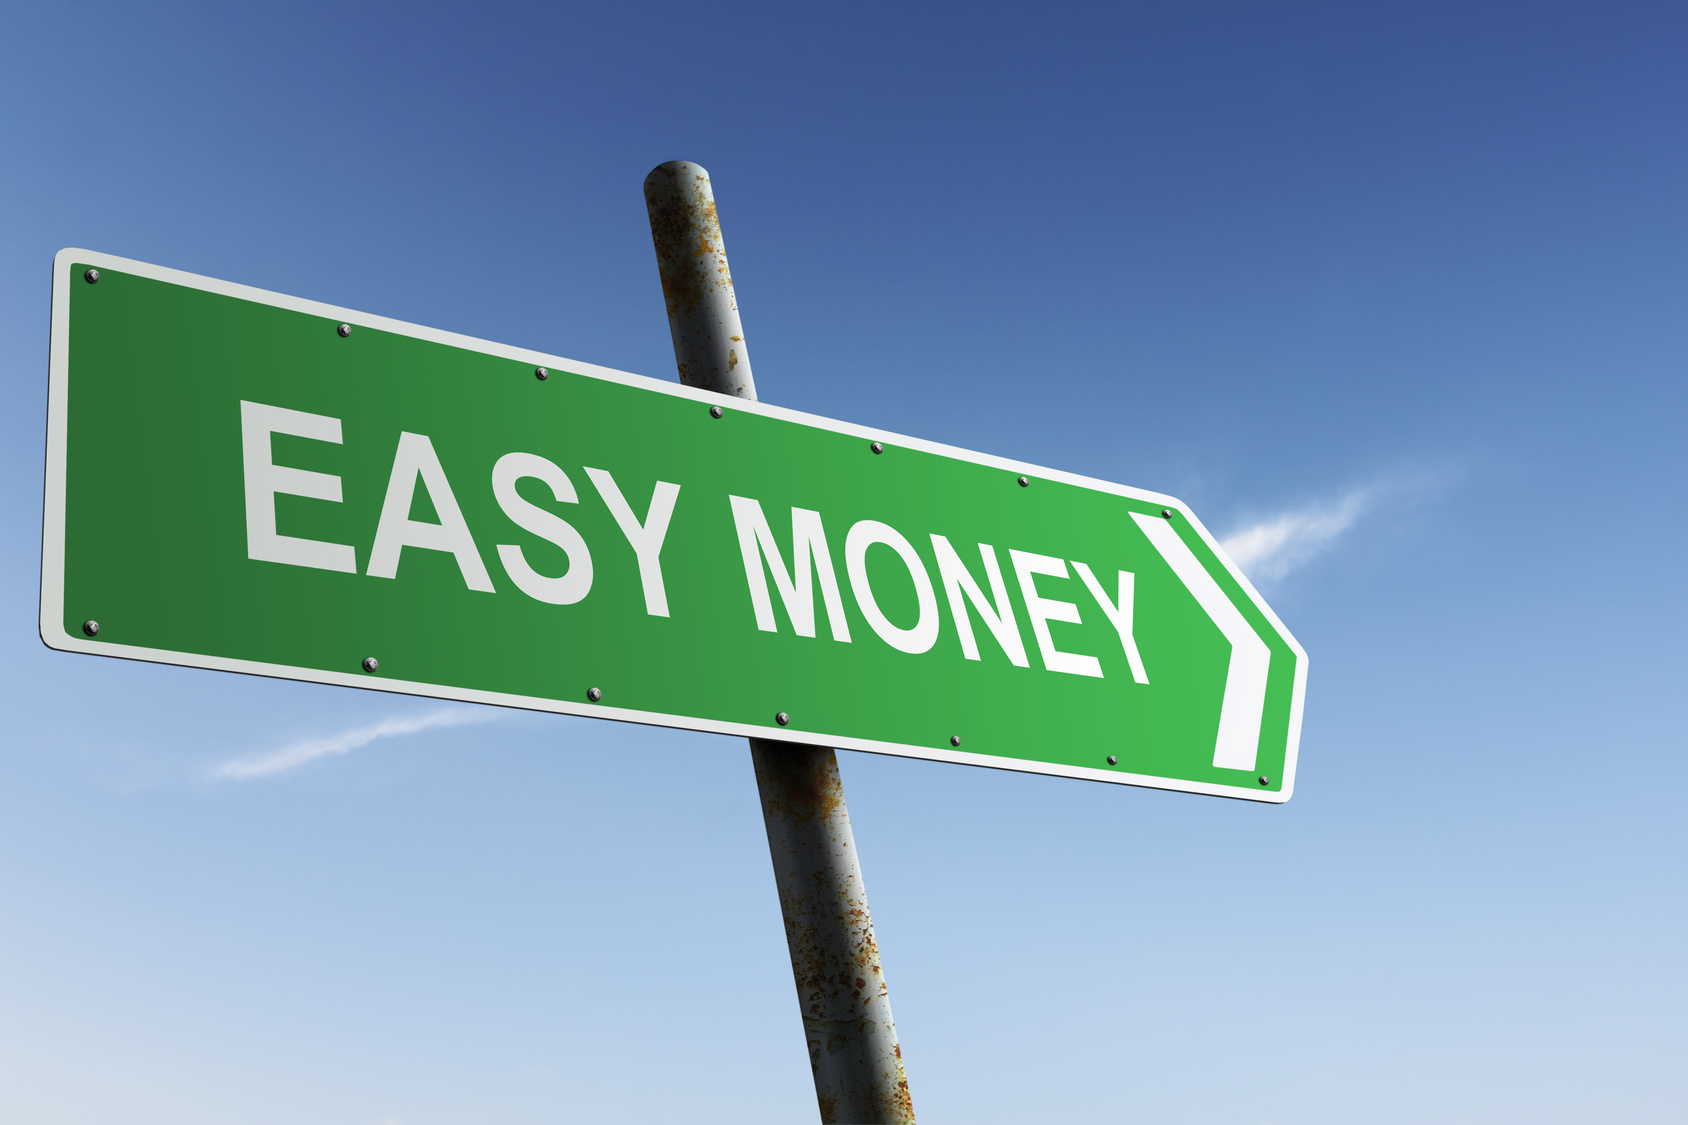 13 Easy Ways to Make $500 Fast in 12222